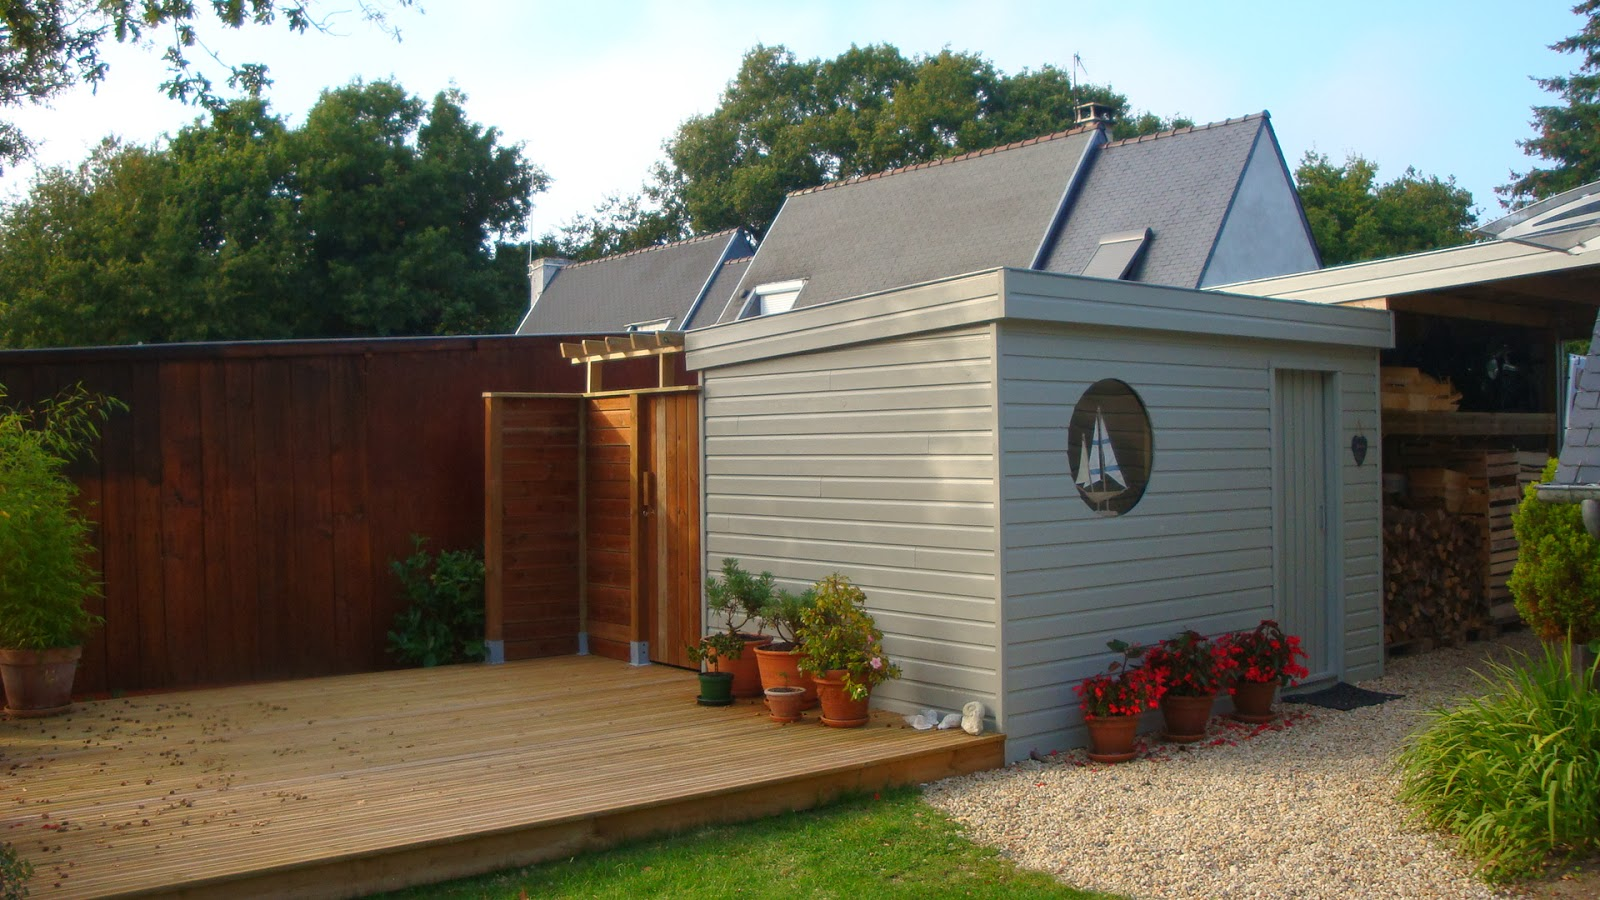 Michel le coz agencement d coration ext rieur car port for Habillage mur exterieur bois